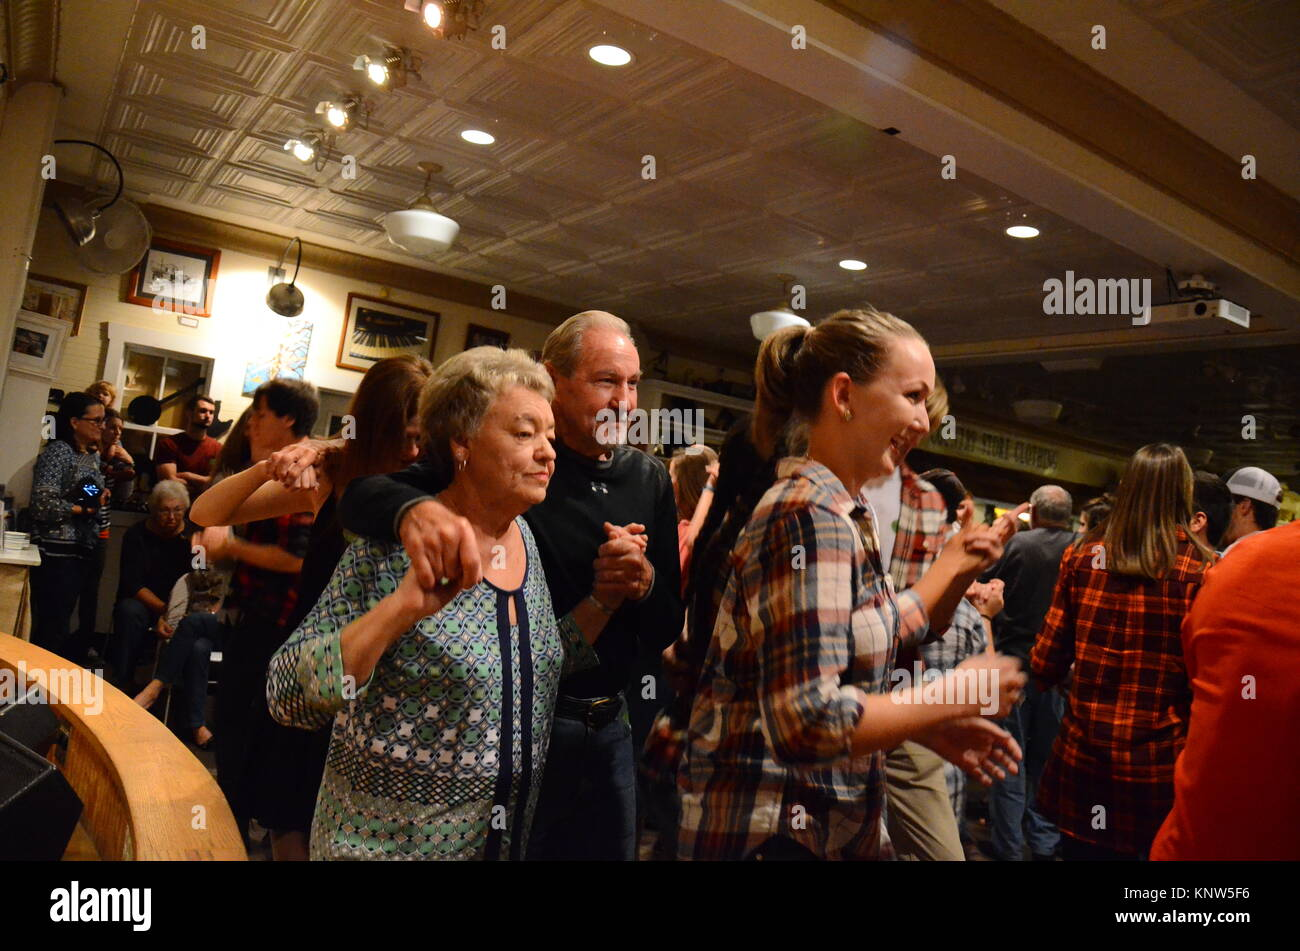 People dancing at the Friday Night Jamboree at Floyd Country Store in Floyd, Virginia, 24091, USA - Stock Image